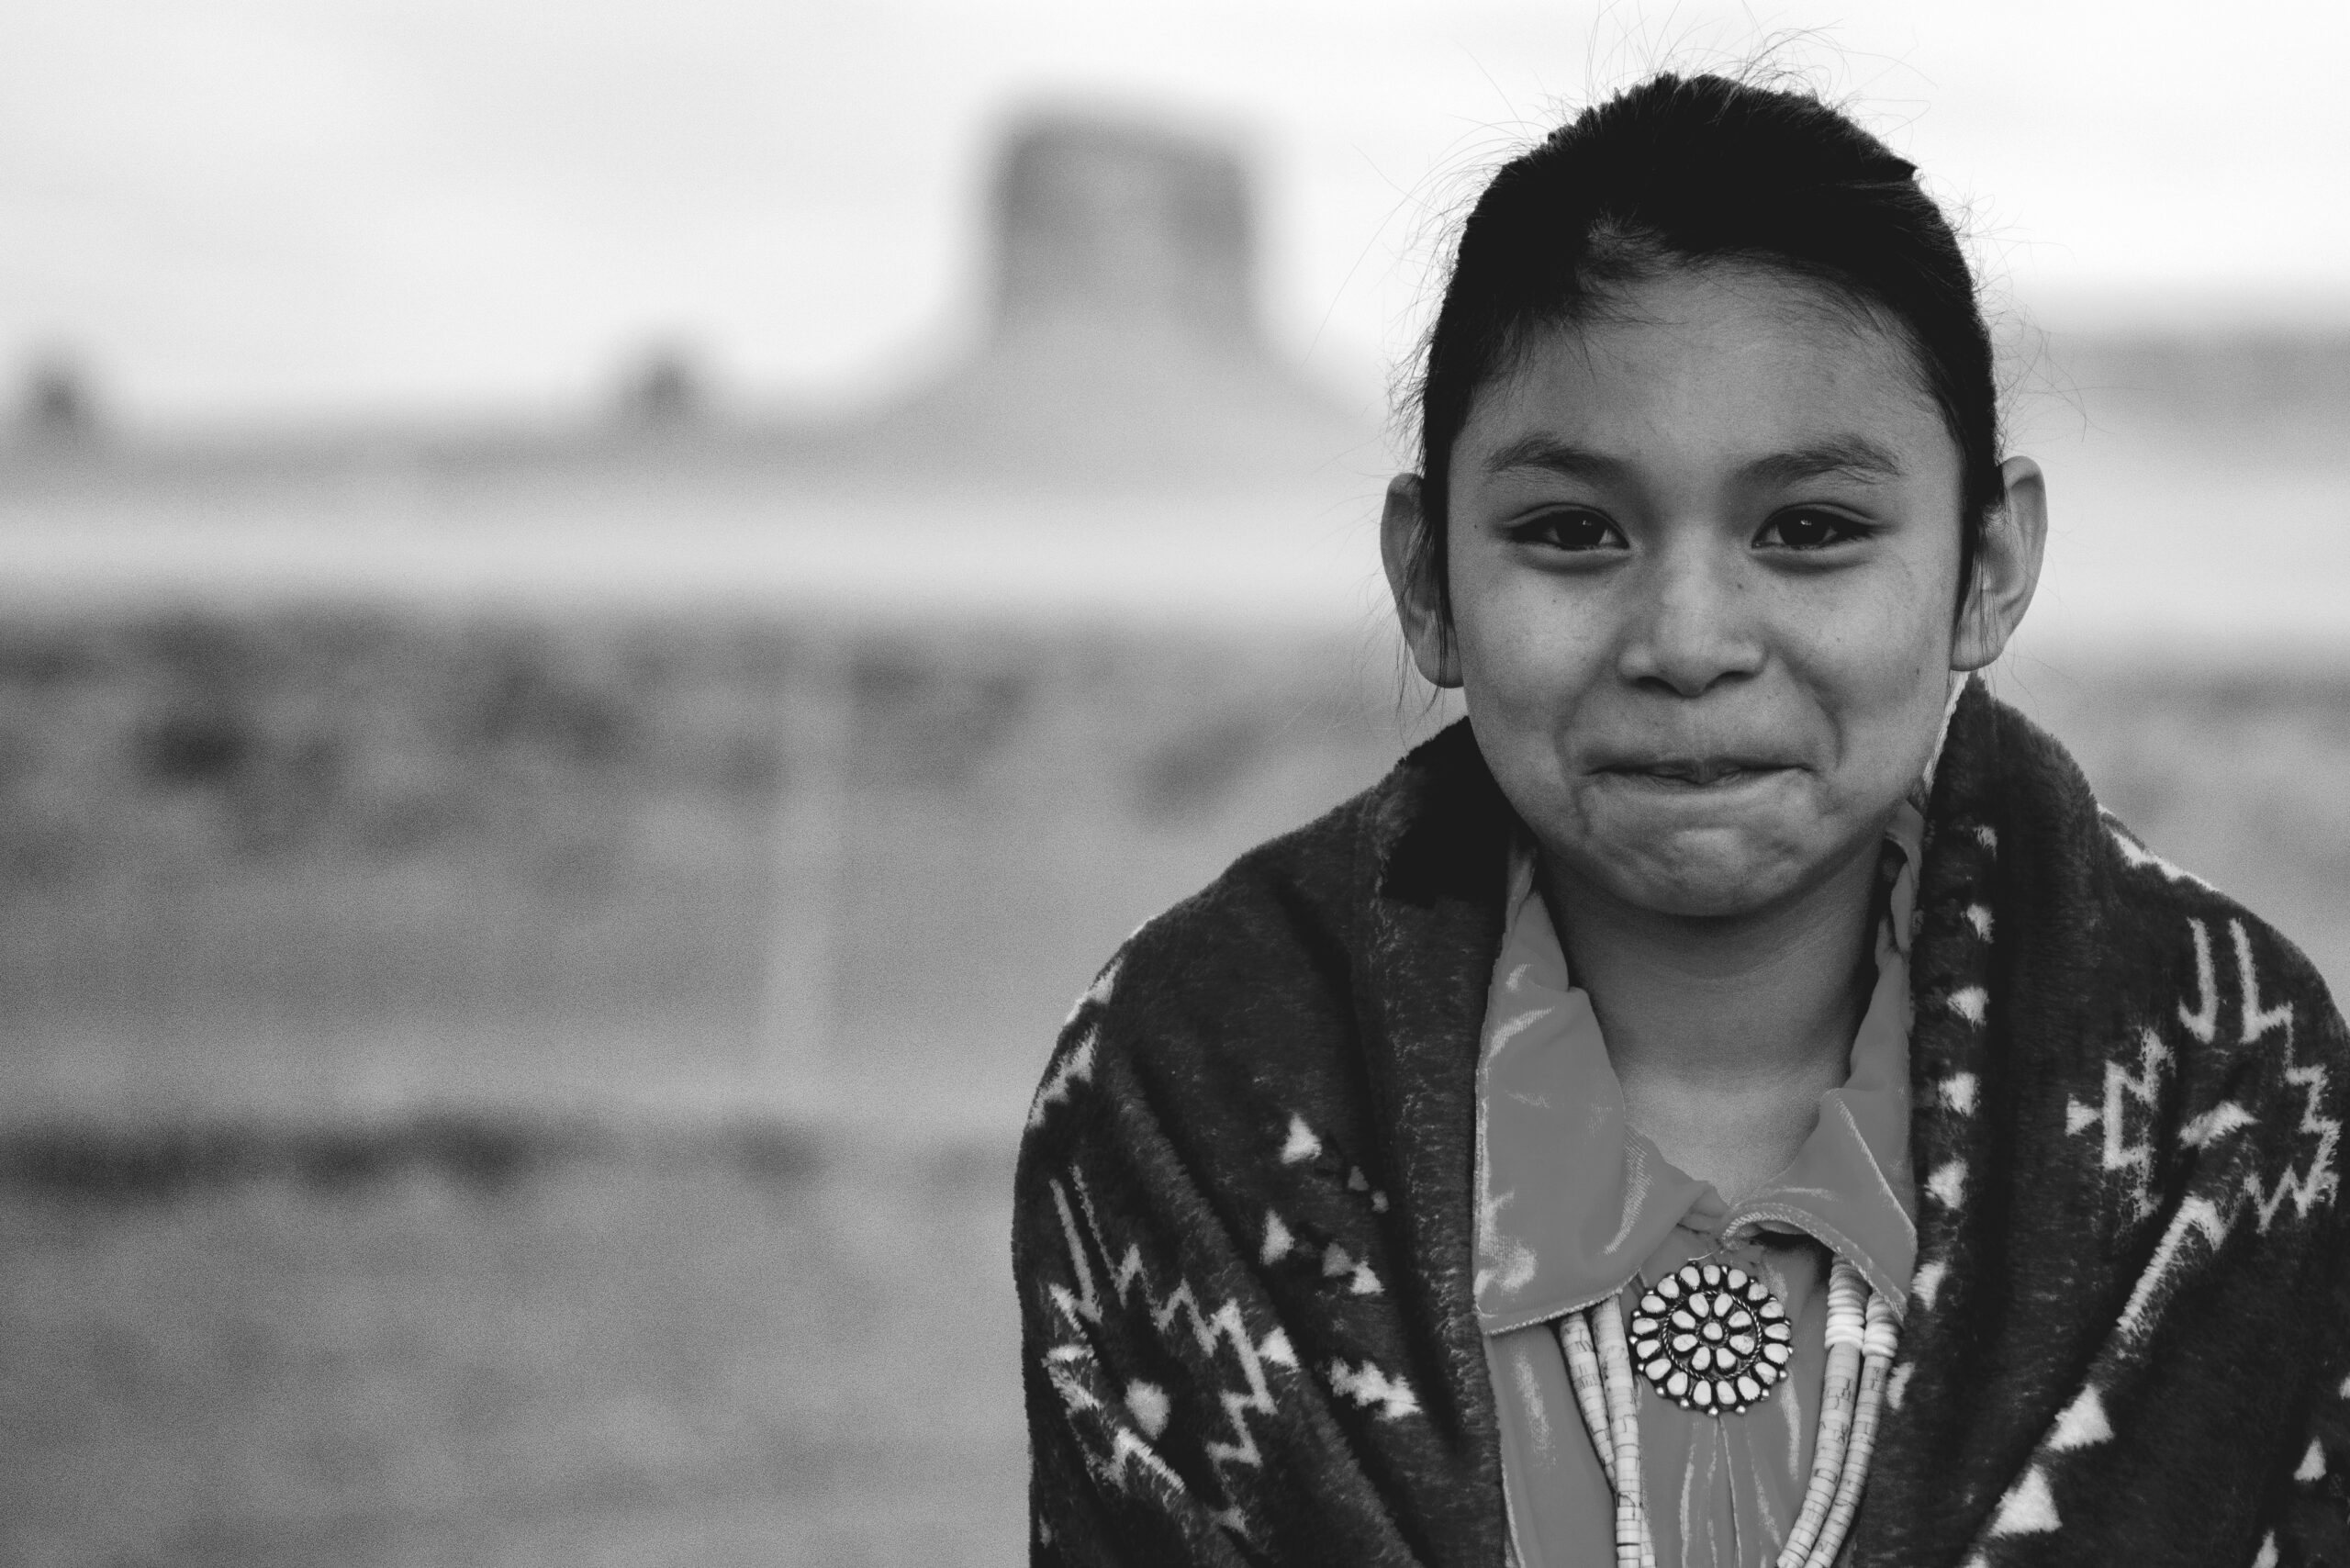 A Young Navajo Girl Who Lives in Monument Valley, Arizona